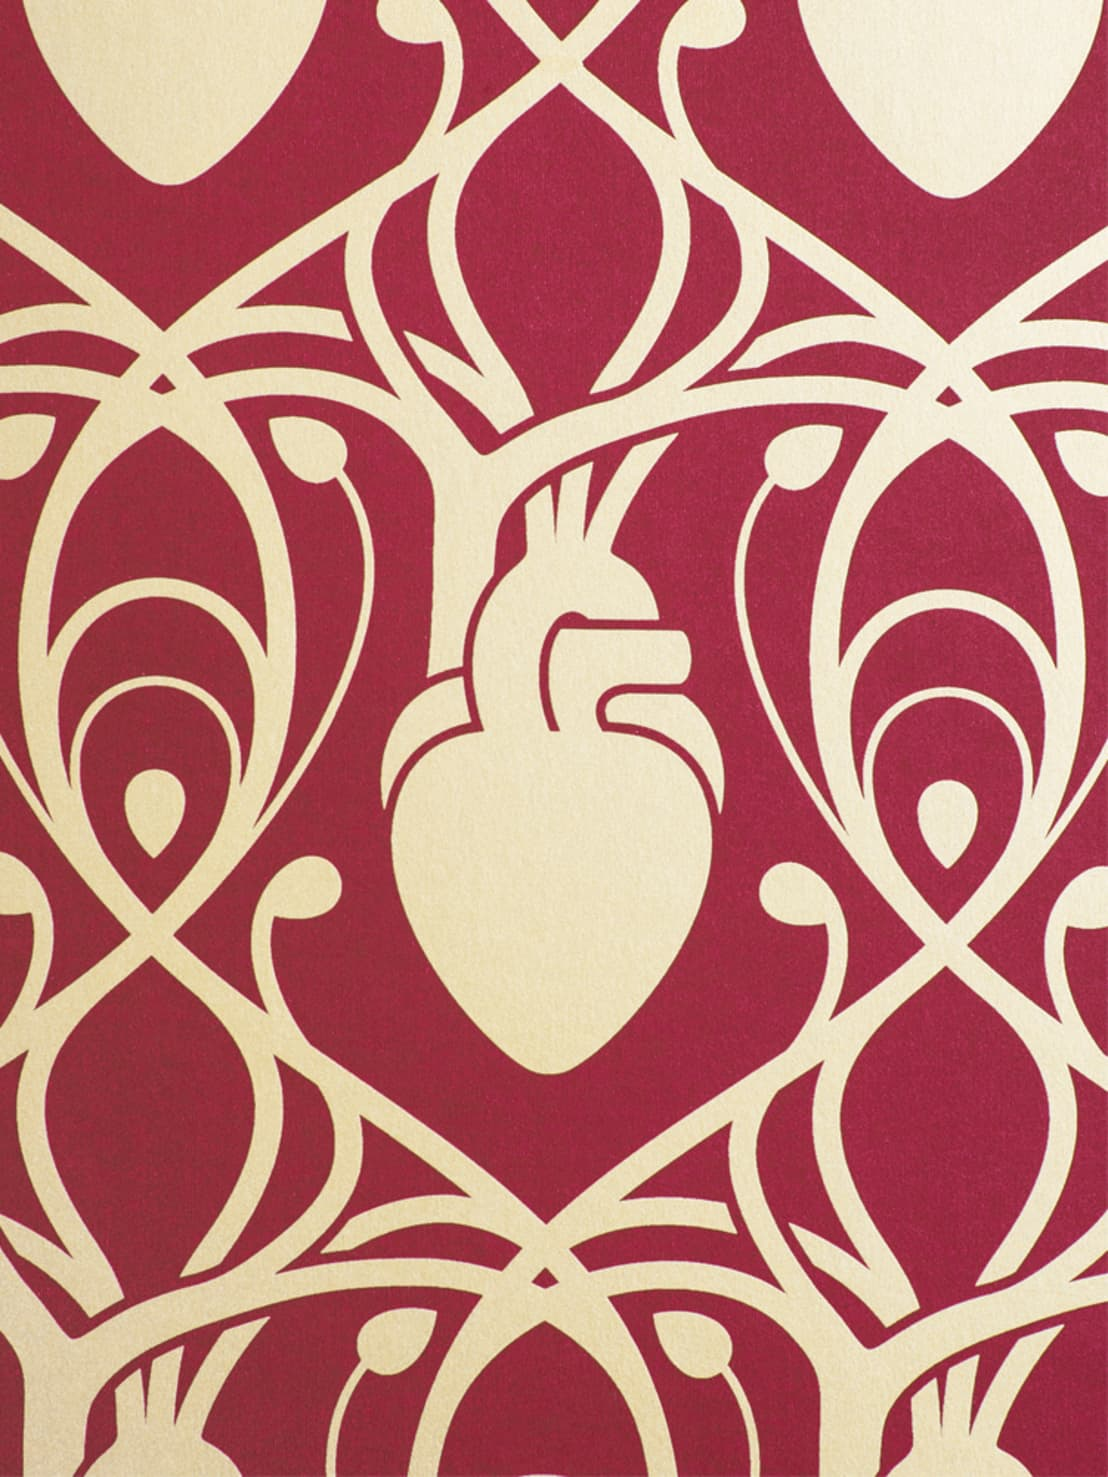 Anatomy Boutique Cardiac Wallpaper by Anatomy Boutique homify 1108x1477